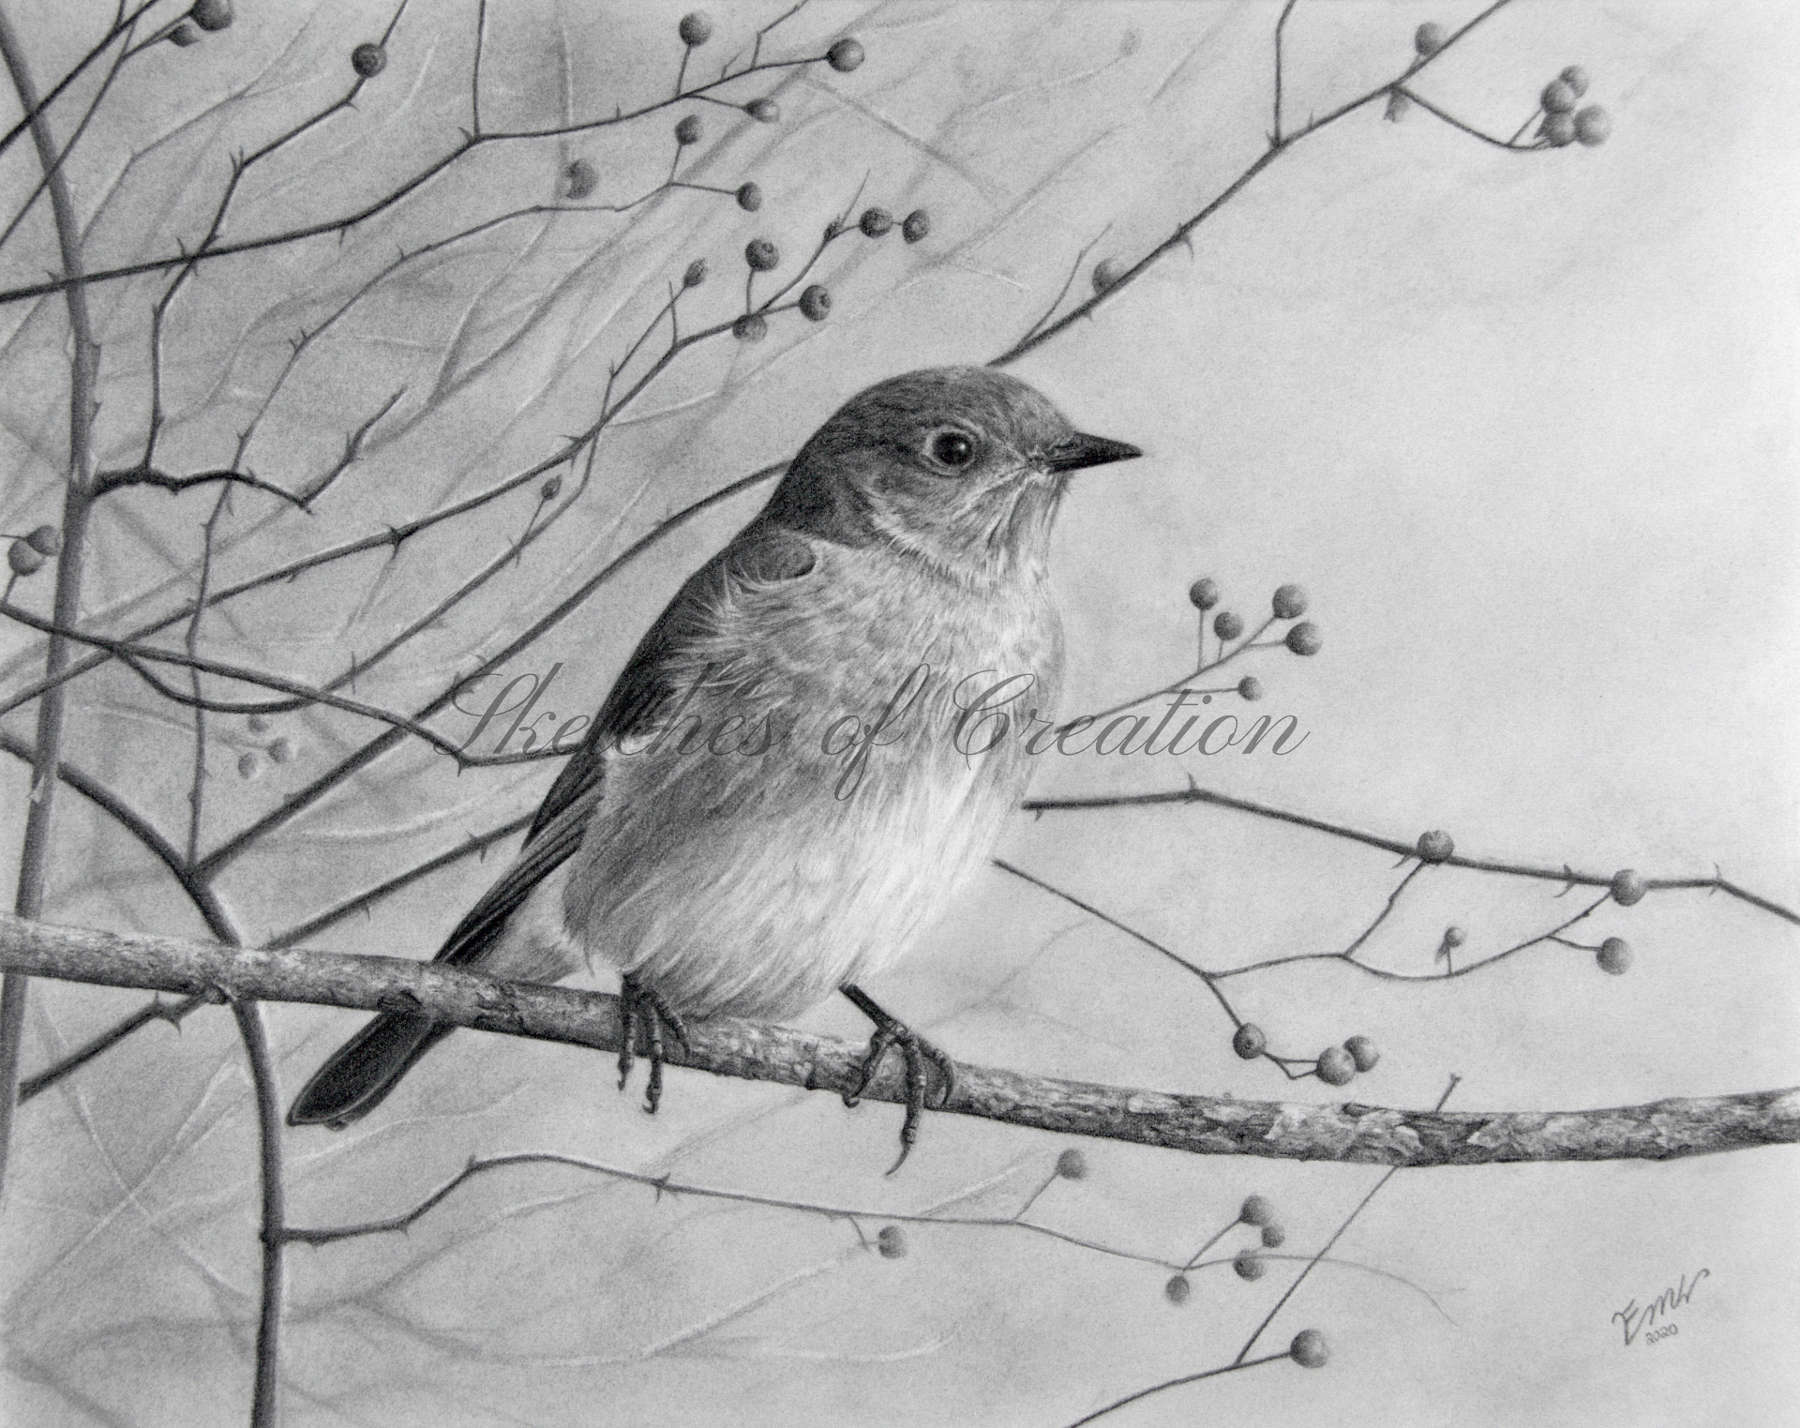 'Bluebird' a drawing of an Eastern Bluebird. 8x10 inches. Completed December 2020